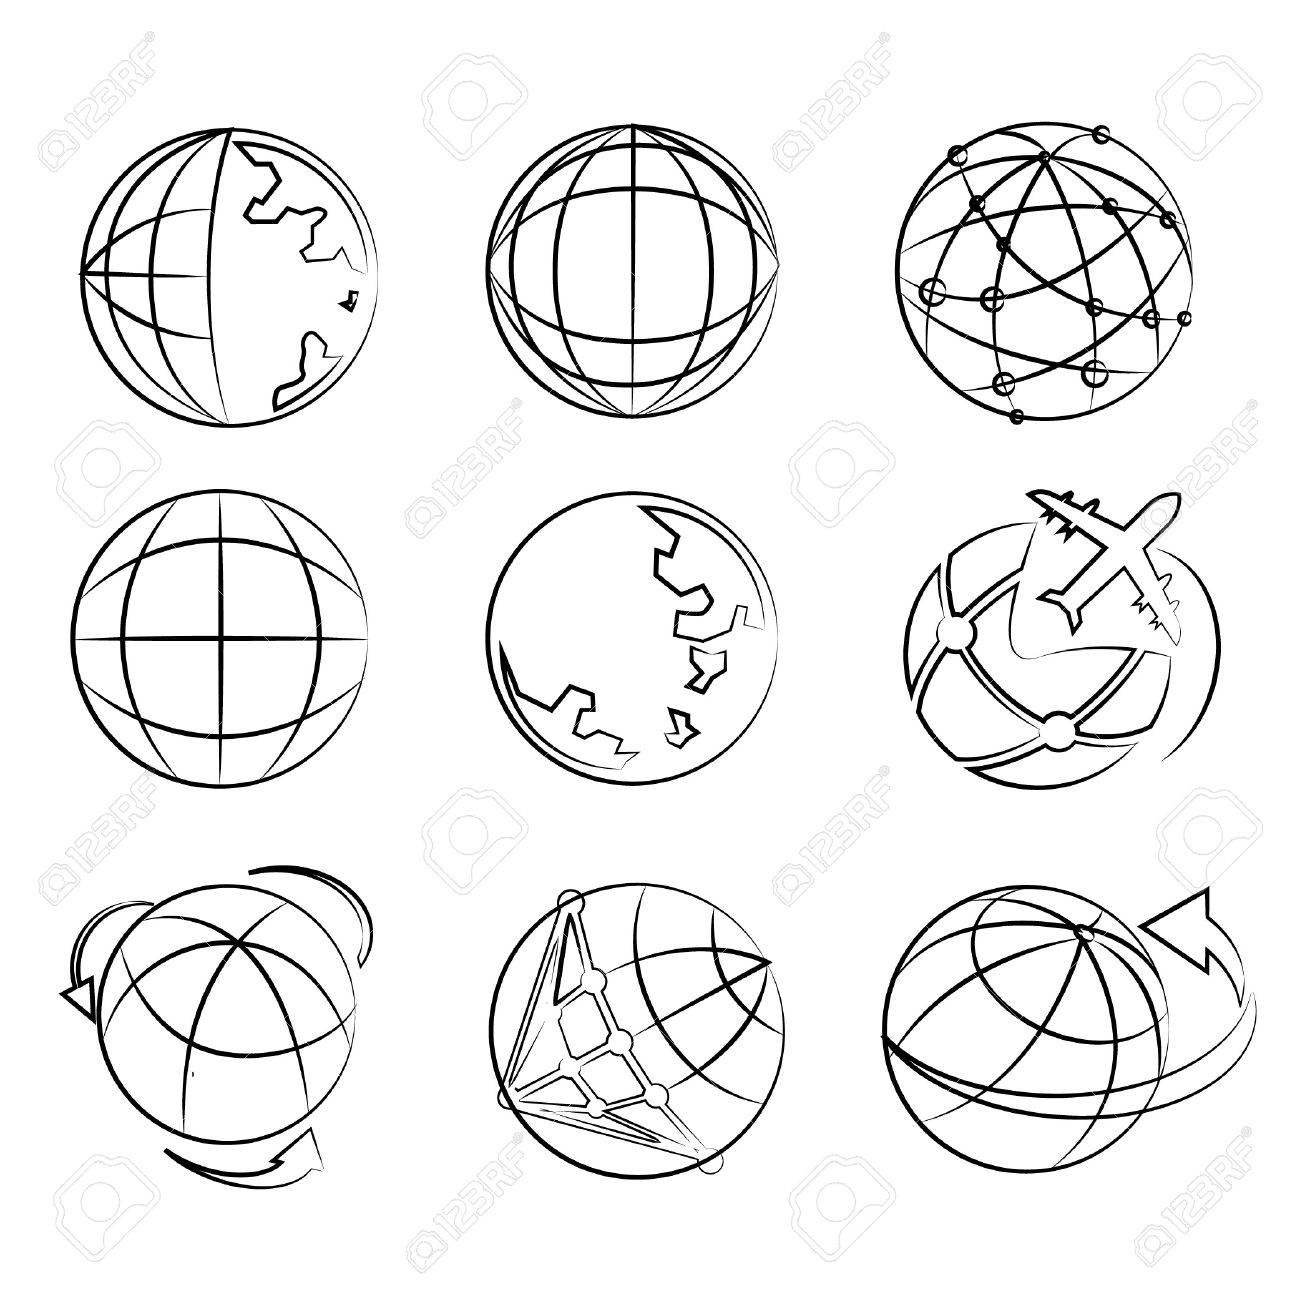 Globe drawing line set world map sketch line royalty free cliparts globe drawing line set world map sketch line stock vector 20959684 gumiabroncs Choice Image